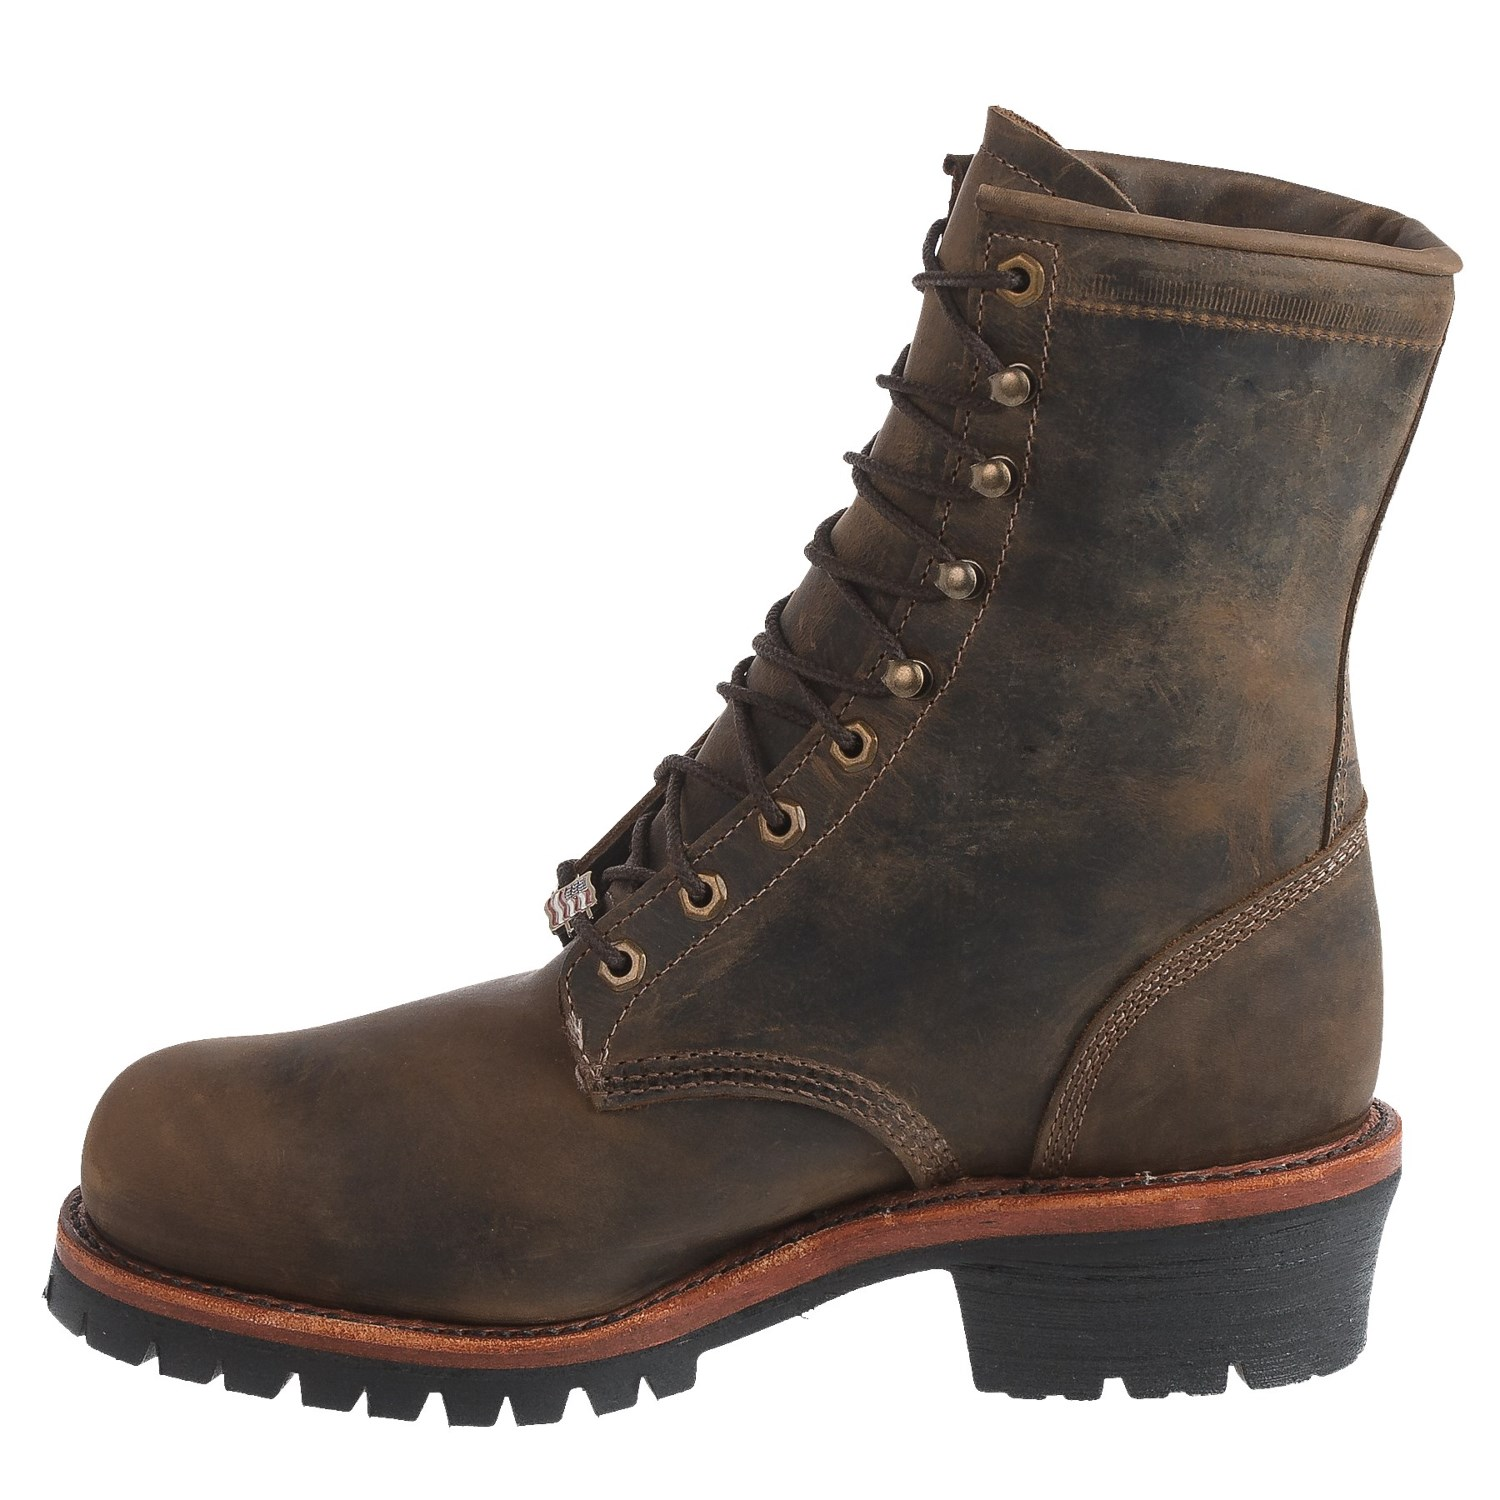 Chippewa Tywin Logger Leather Work Boots (For Men) - Save 45%